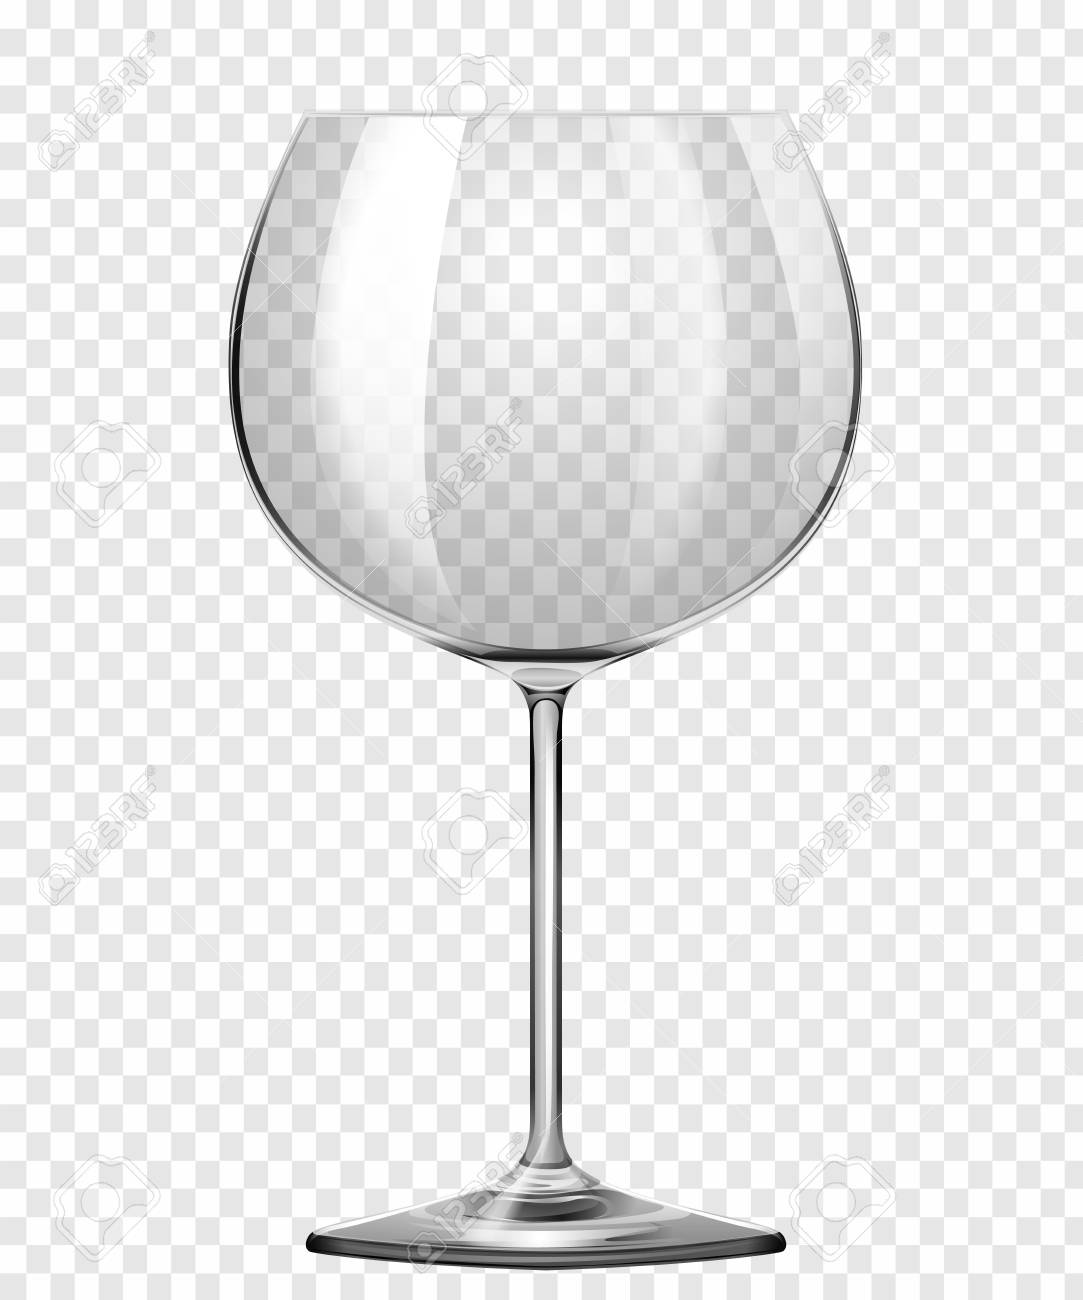 bff1a5ba8d2 Wine Glass On Transparent Background Vector Concept Royalty Free ...